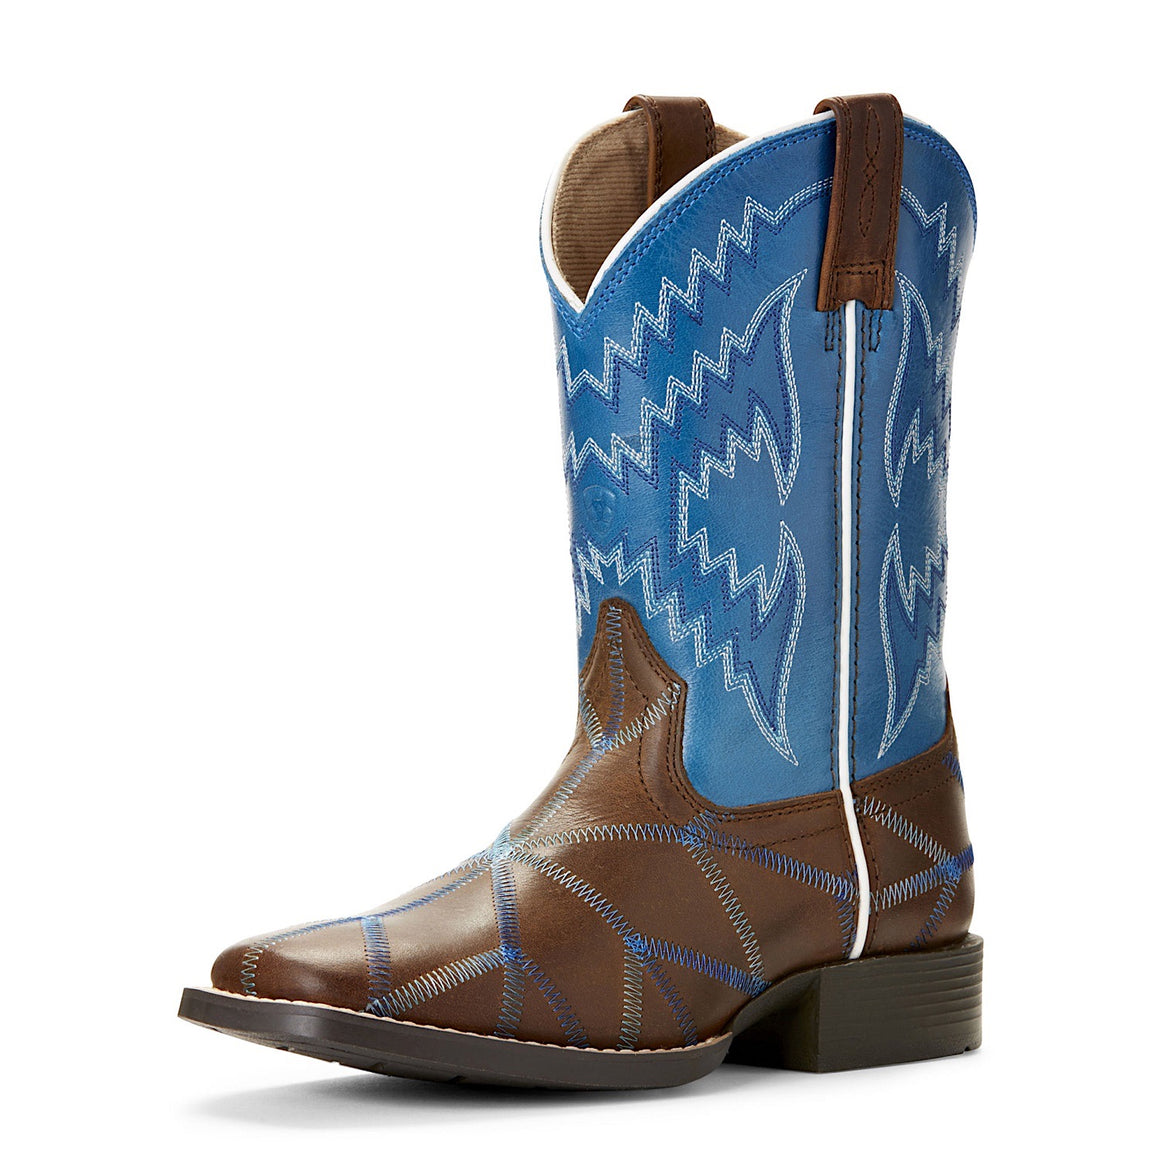 f6908bf1638 Buy Ariat Kids Boots - Discount Prices & Australia-Wide Delivery ...